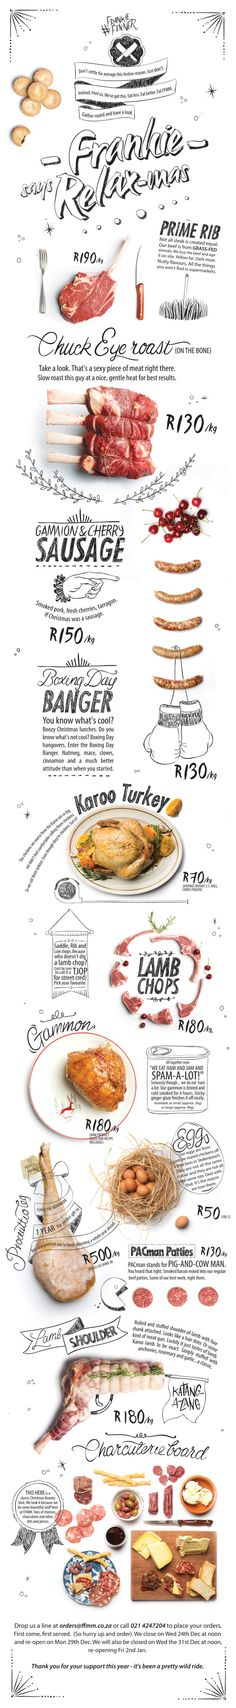 Frankie Fenner Meat Merchants infographic #infographic #layout #typography